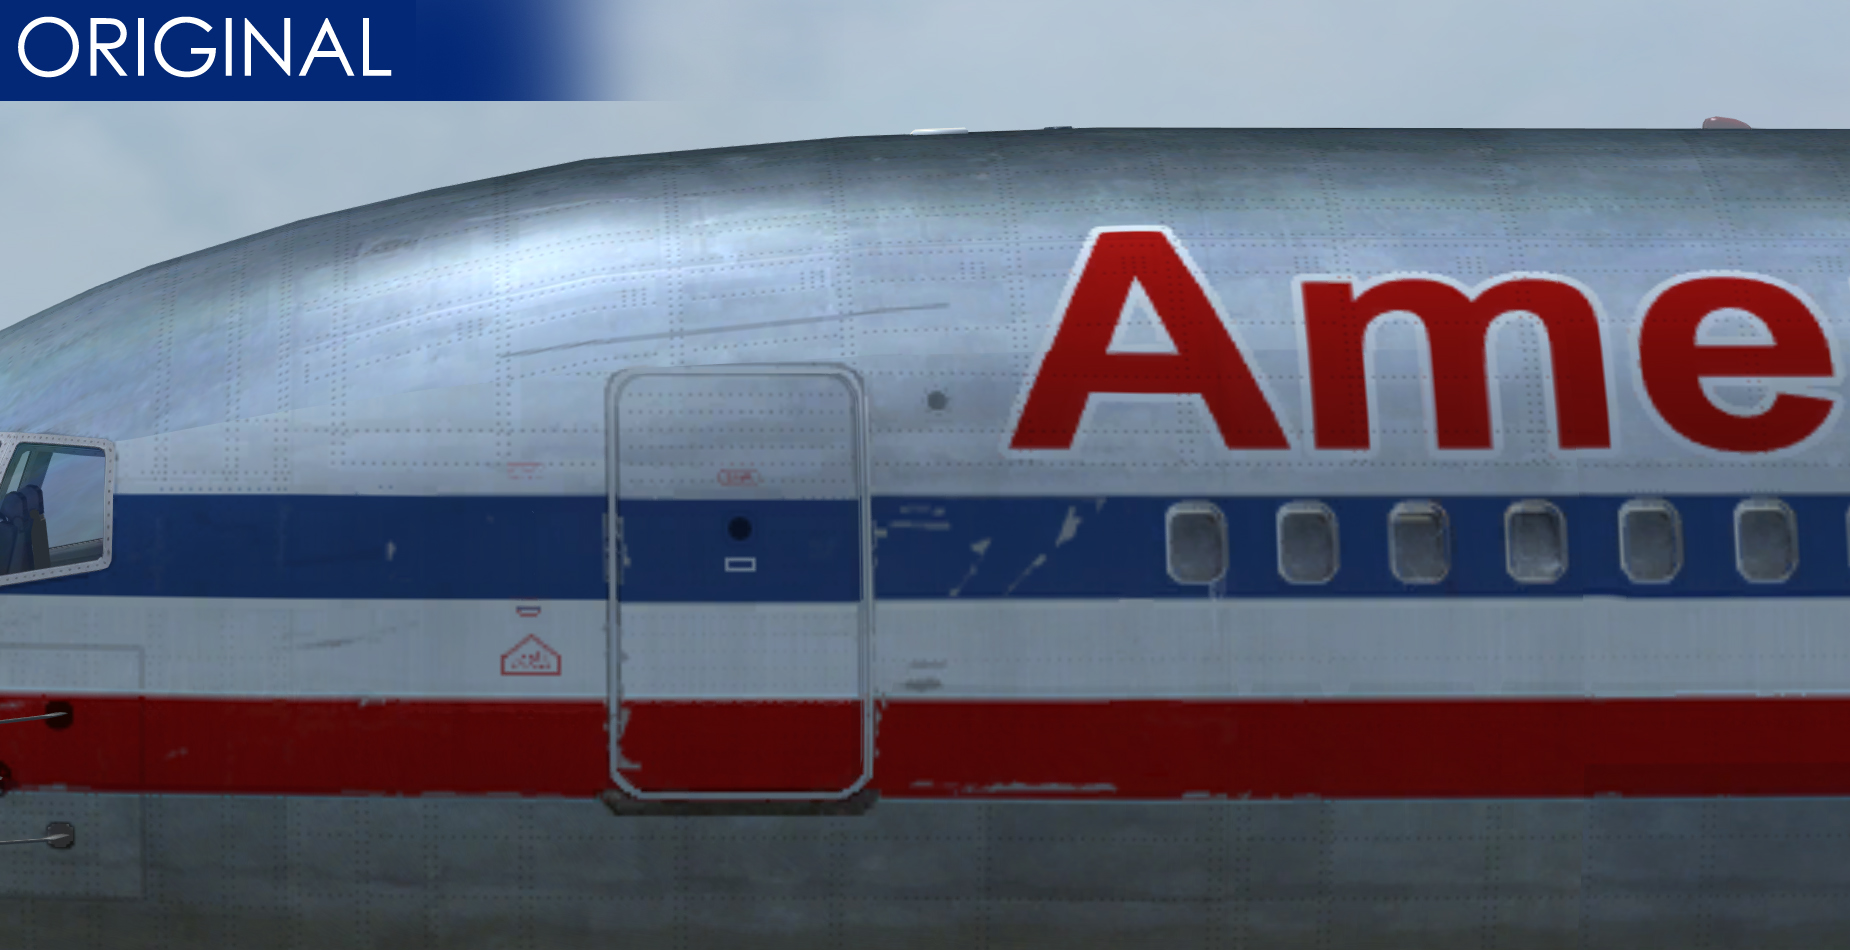 PAINTSIM - UHD TEXTURE PACK FOR CAPTAIN SIM BOEING 767-300 FSX